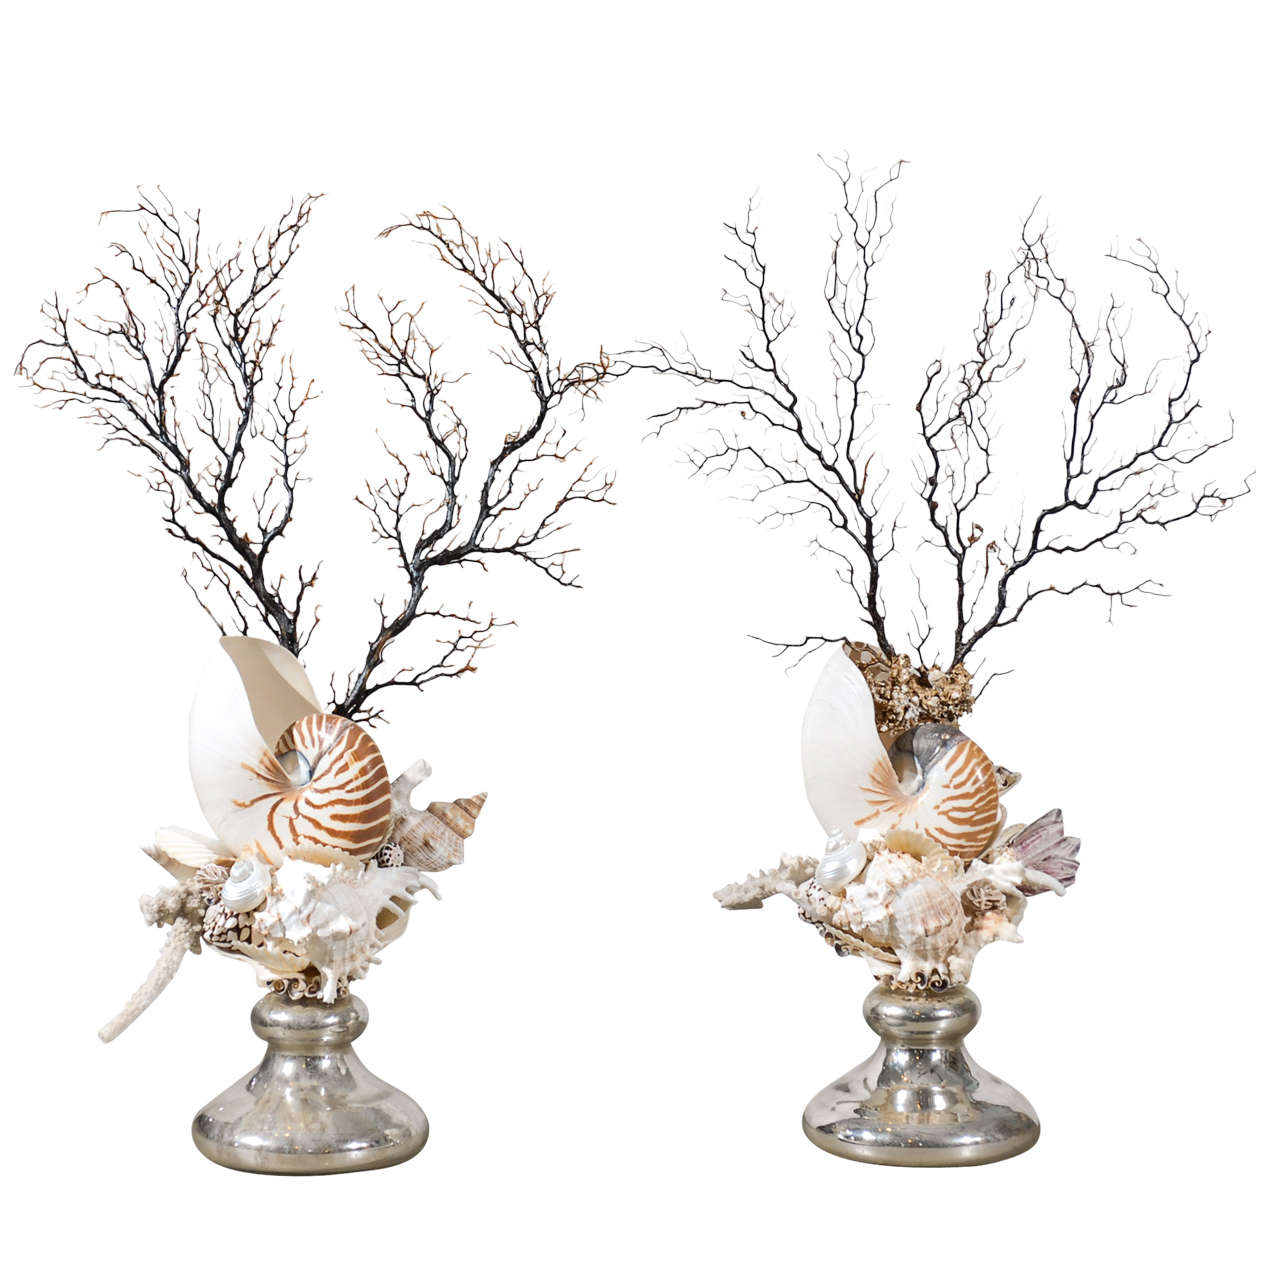 Pair Of Sea Life Decorative Objects At 1stdibs